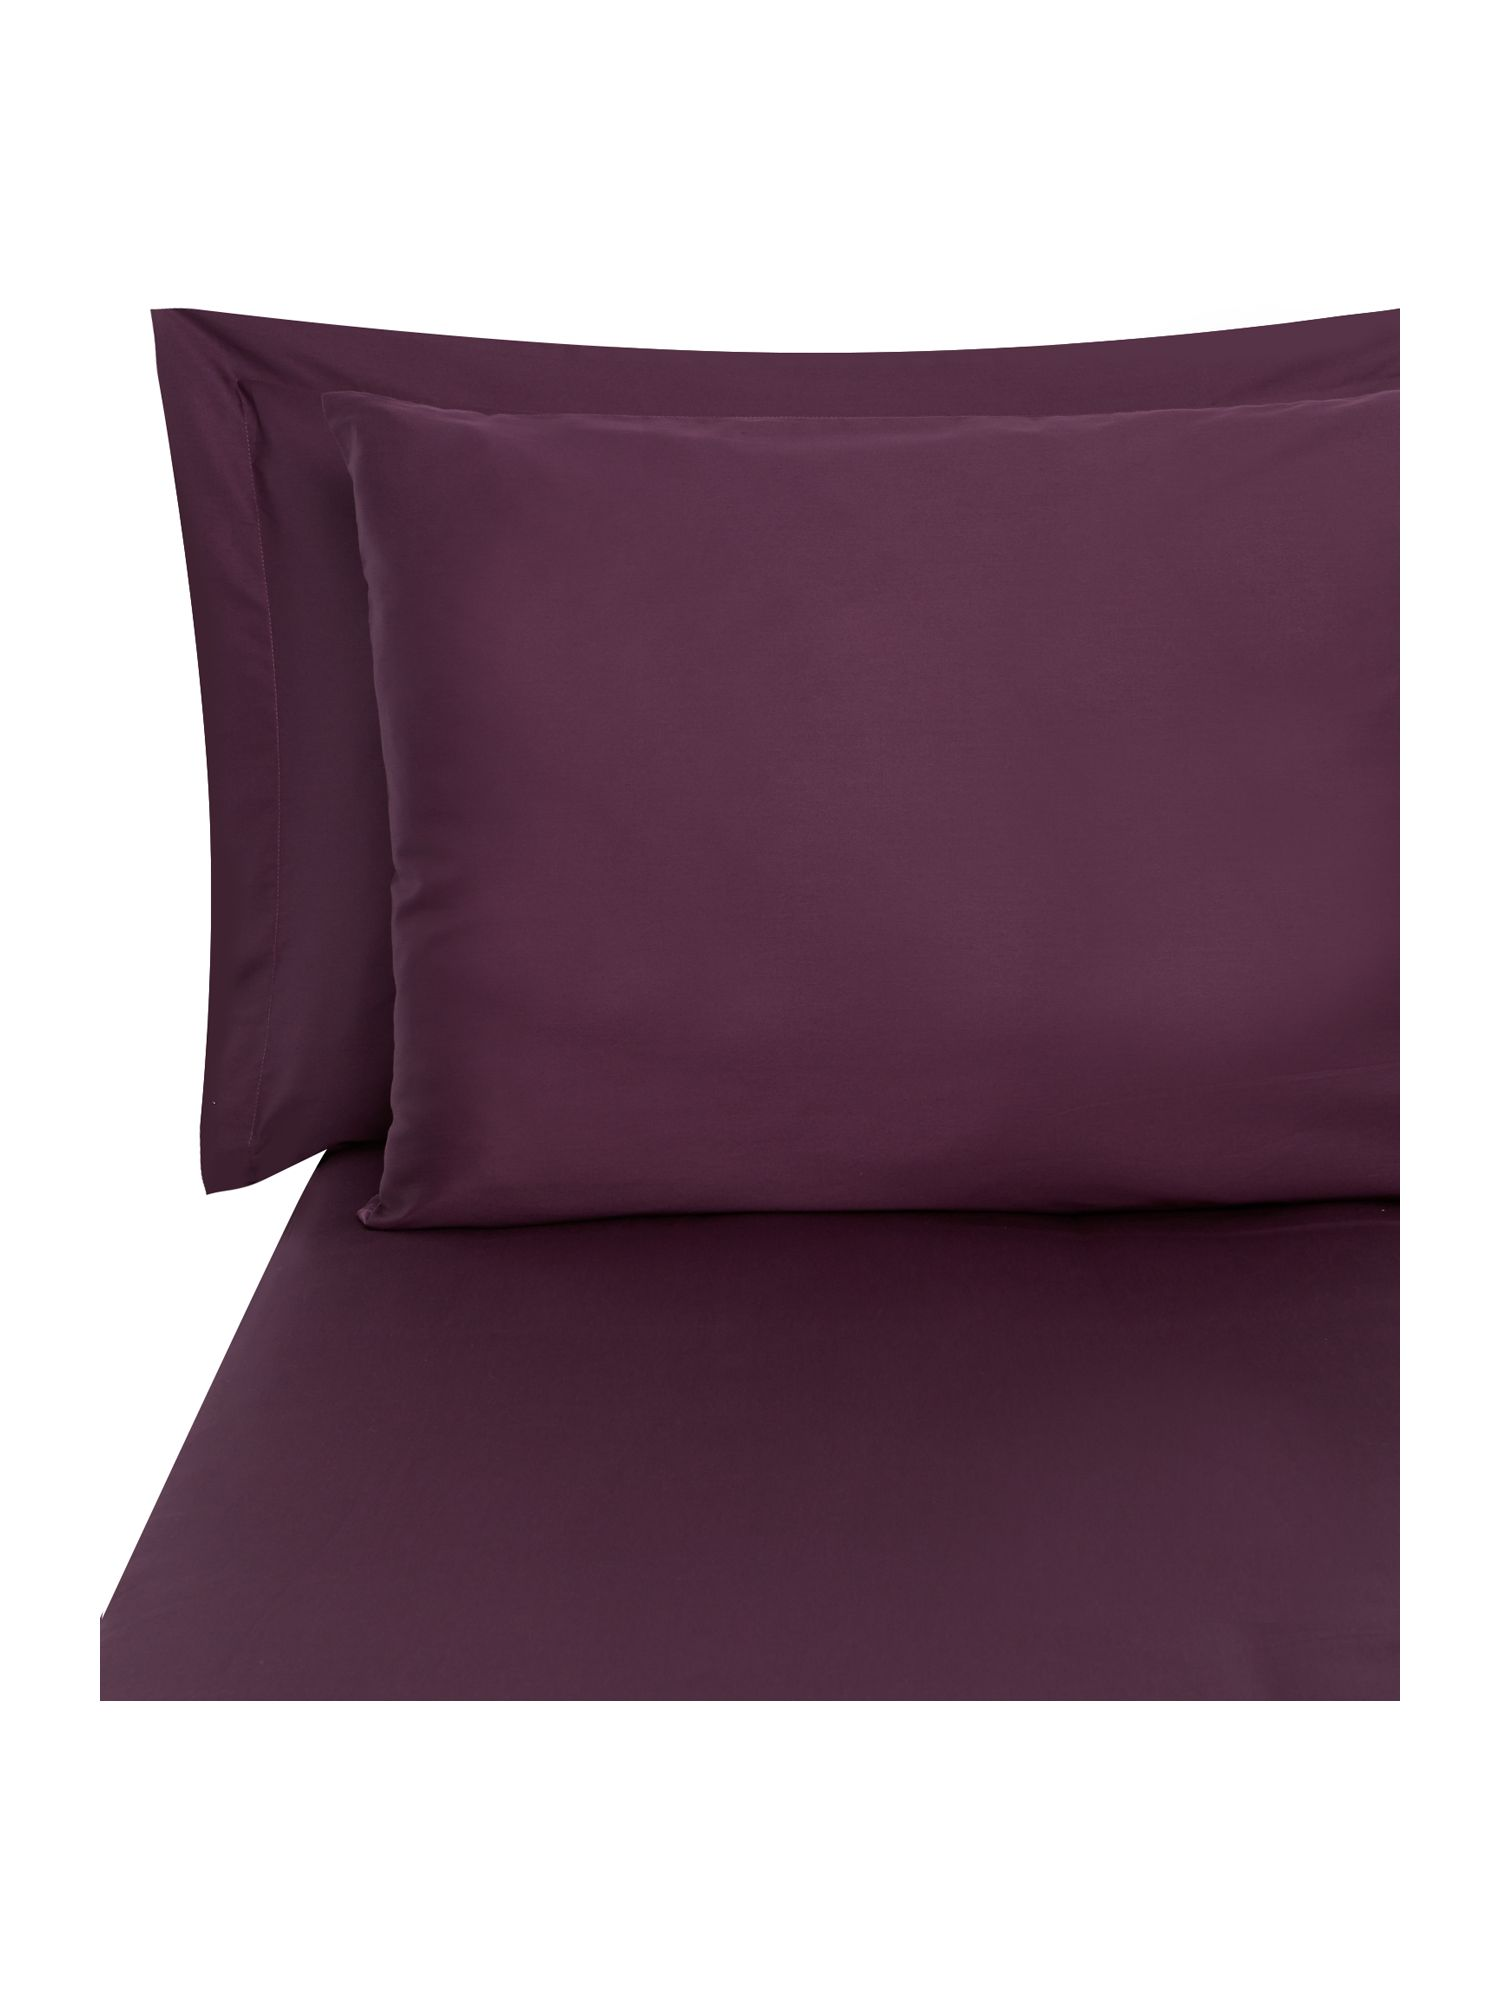 Amethyst housewife pillowcase pair